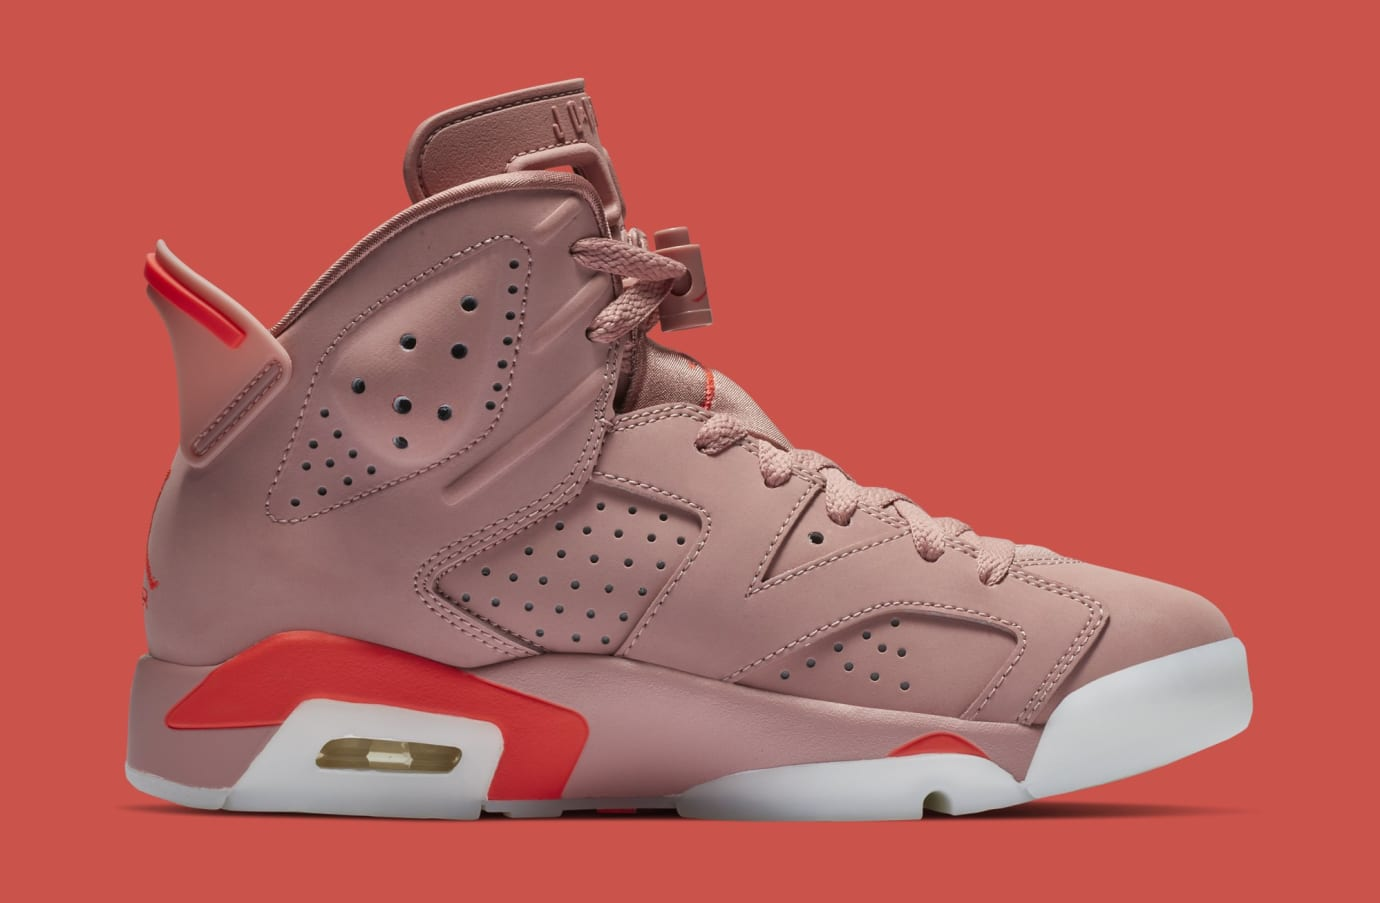 Aleali May x Air Jordan 6 'Rust Pink/Bright Crimson' CI0550-600 (Medial)